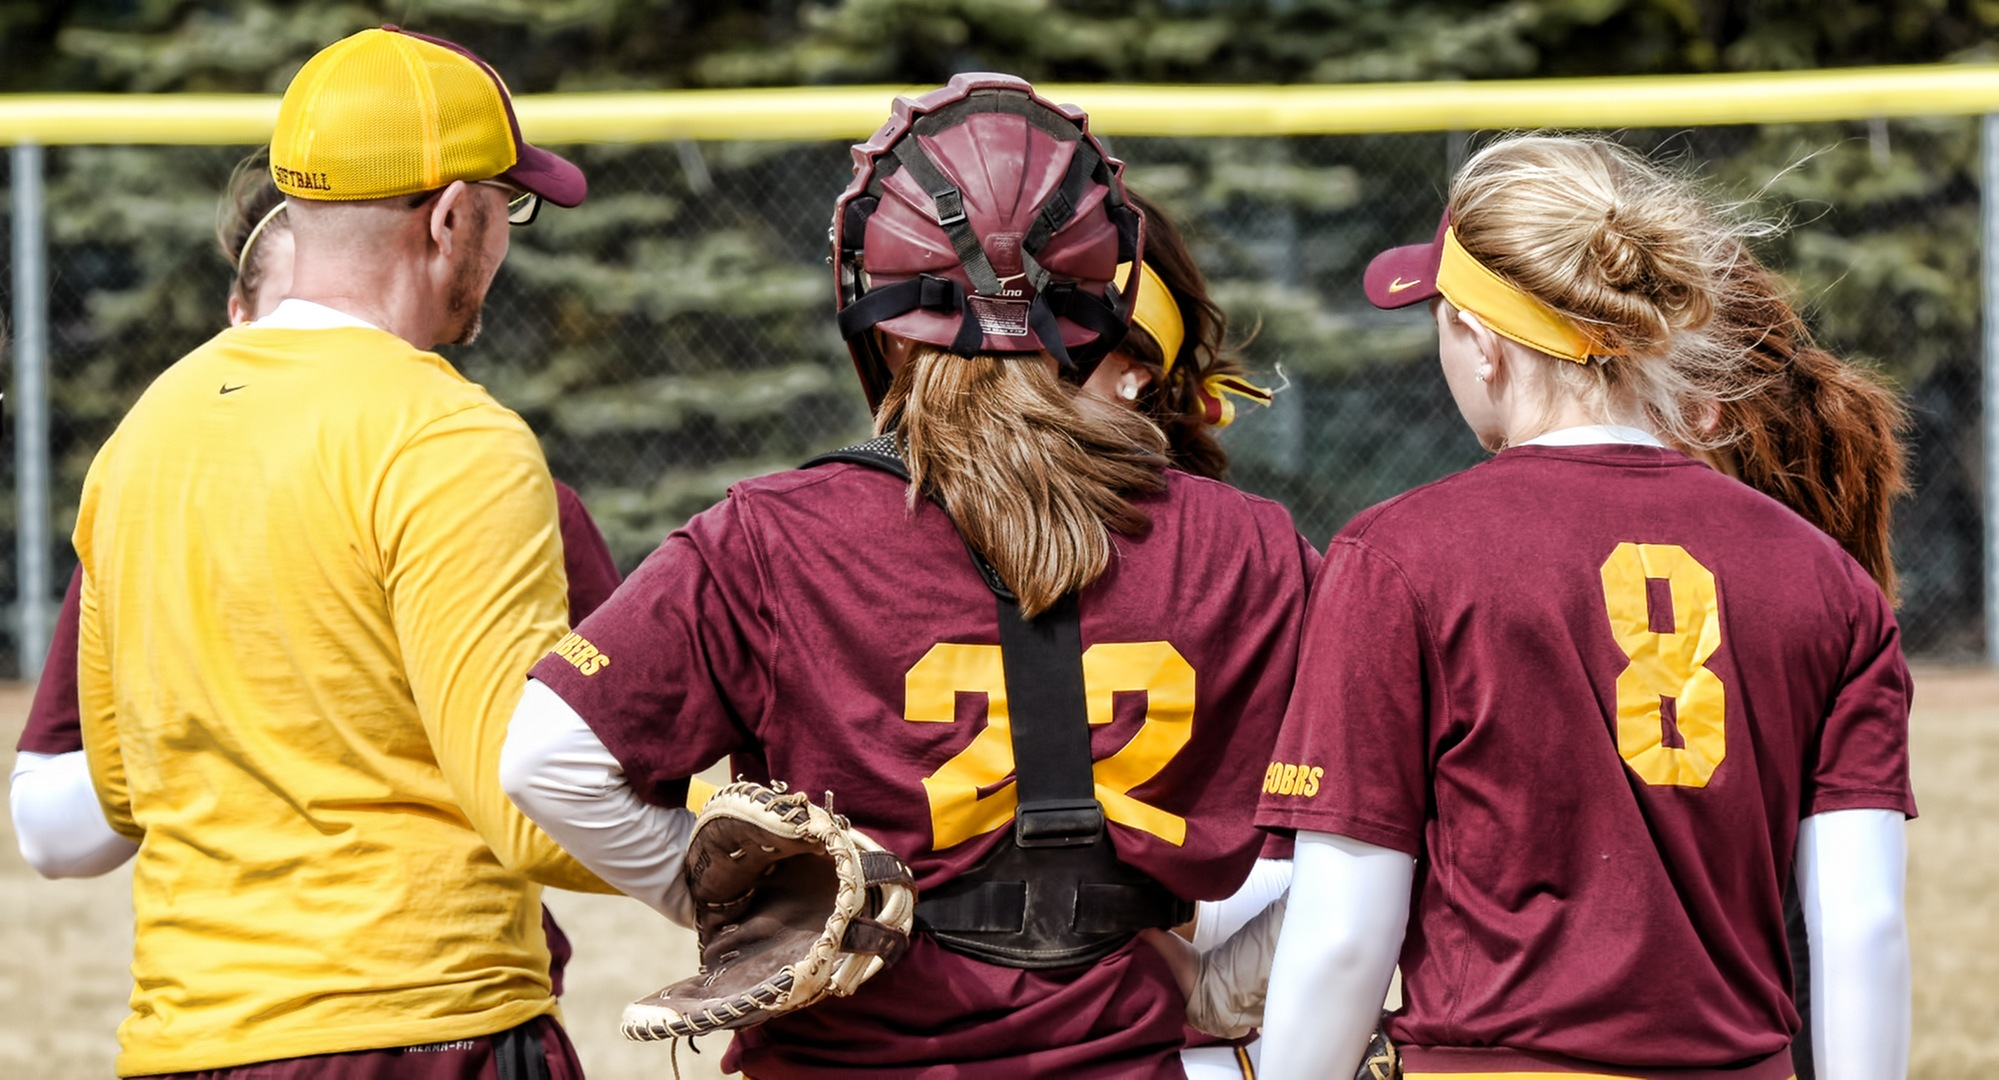 Concordia head coach Chad Slyter announced that the Cobbers will conduct their annual one-day fastpitch softball camp on Sunday, Mar. 11.